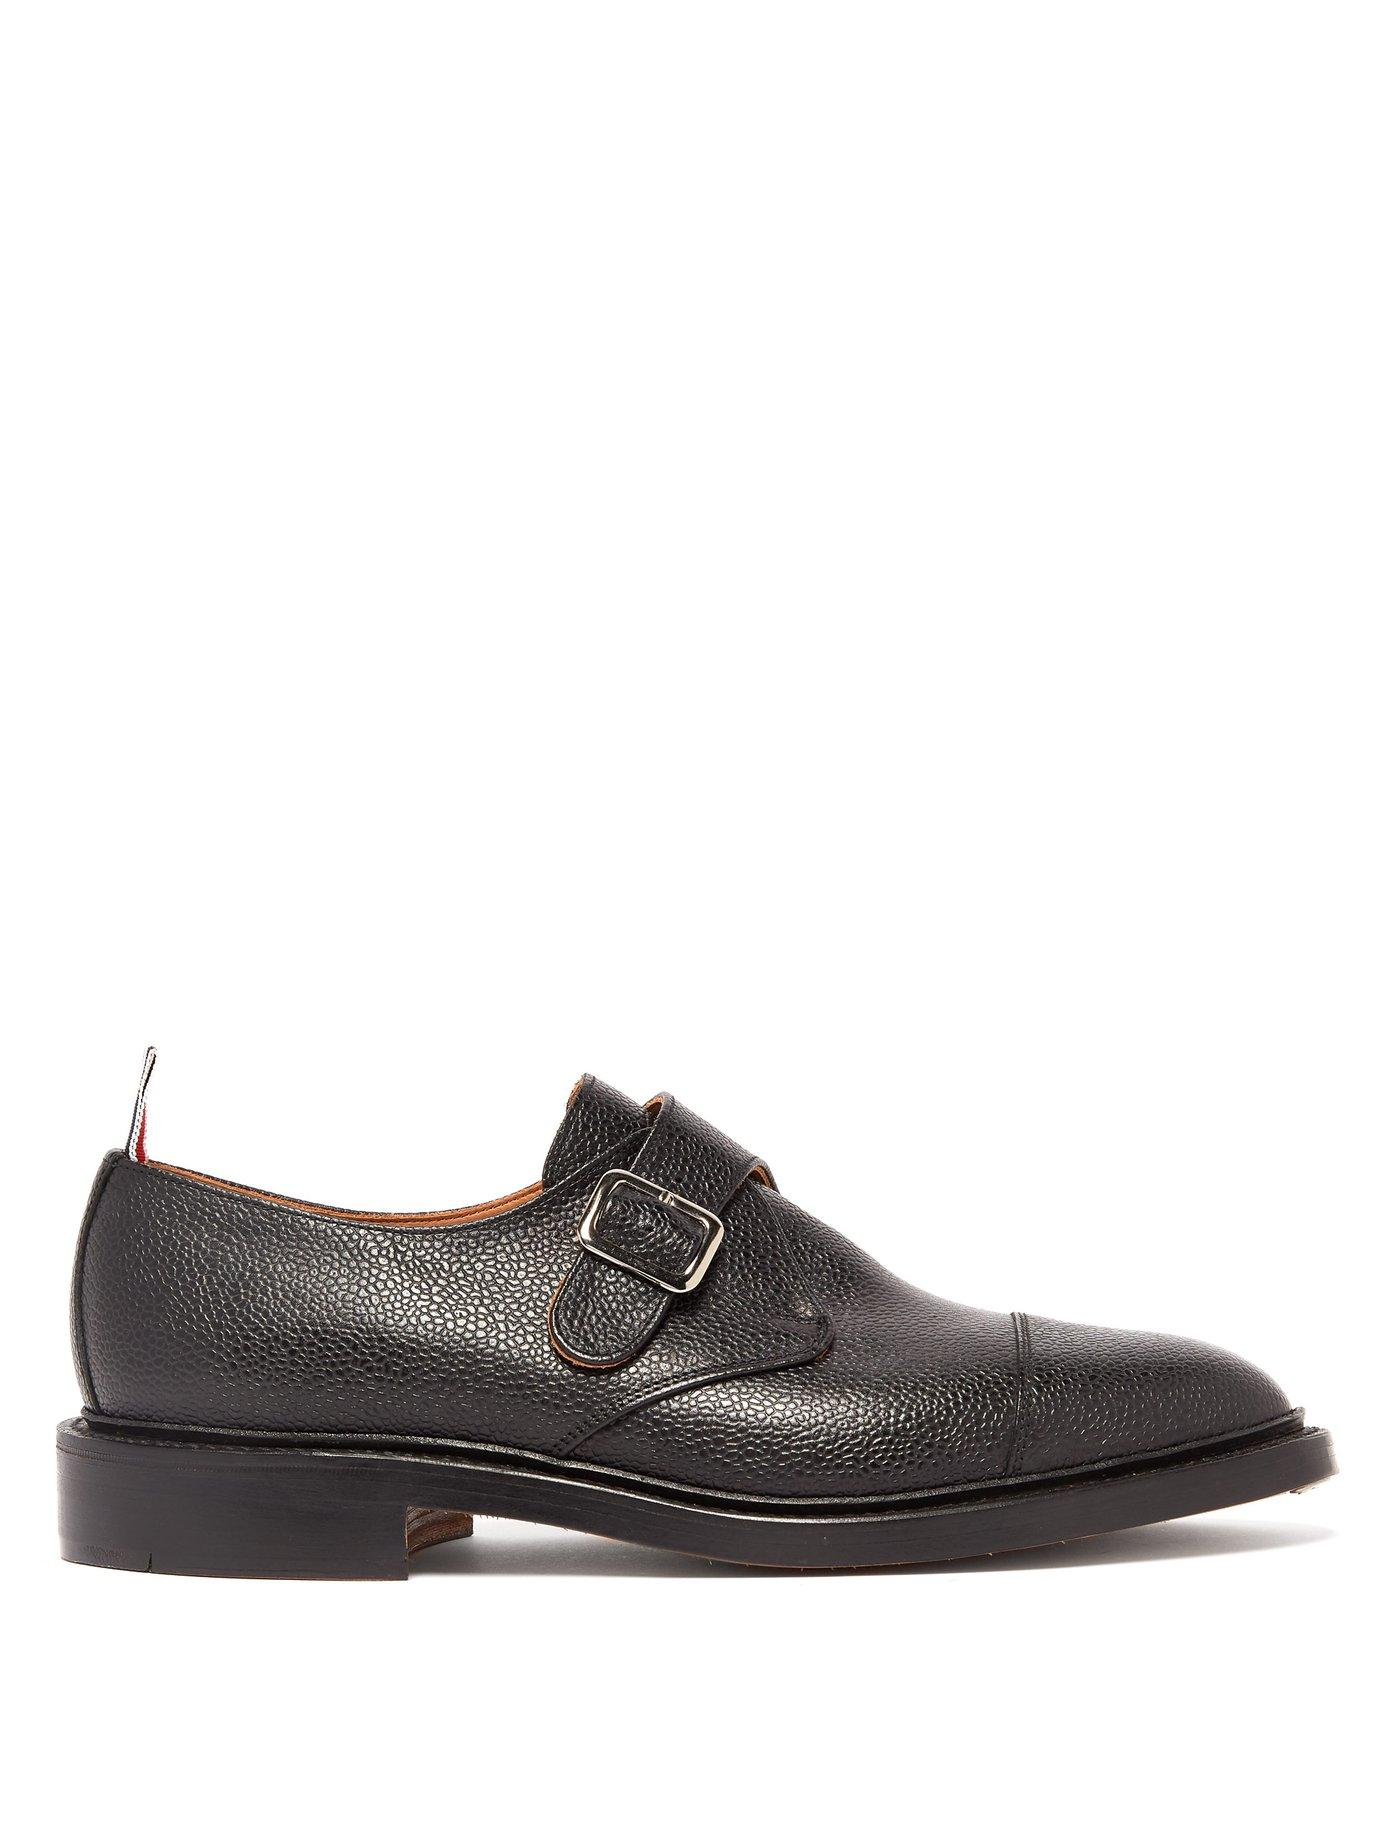 5c38f57a734 Lyst - Thom Browne Monk Strap Pebbled Leather Shoes for Men